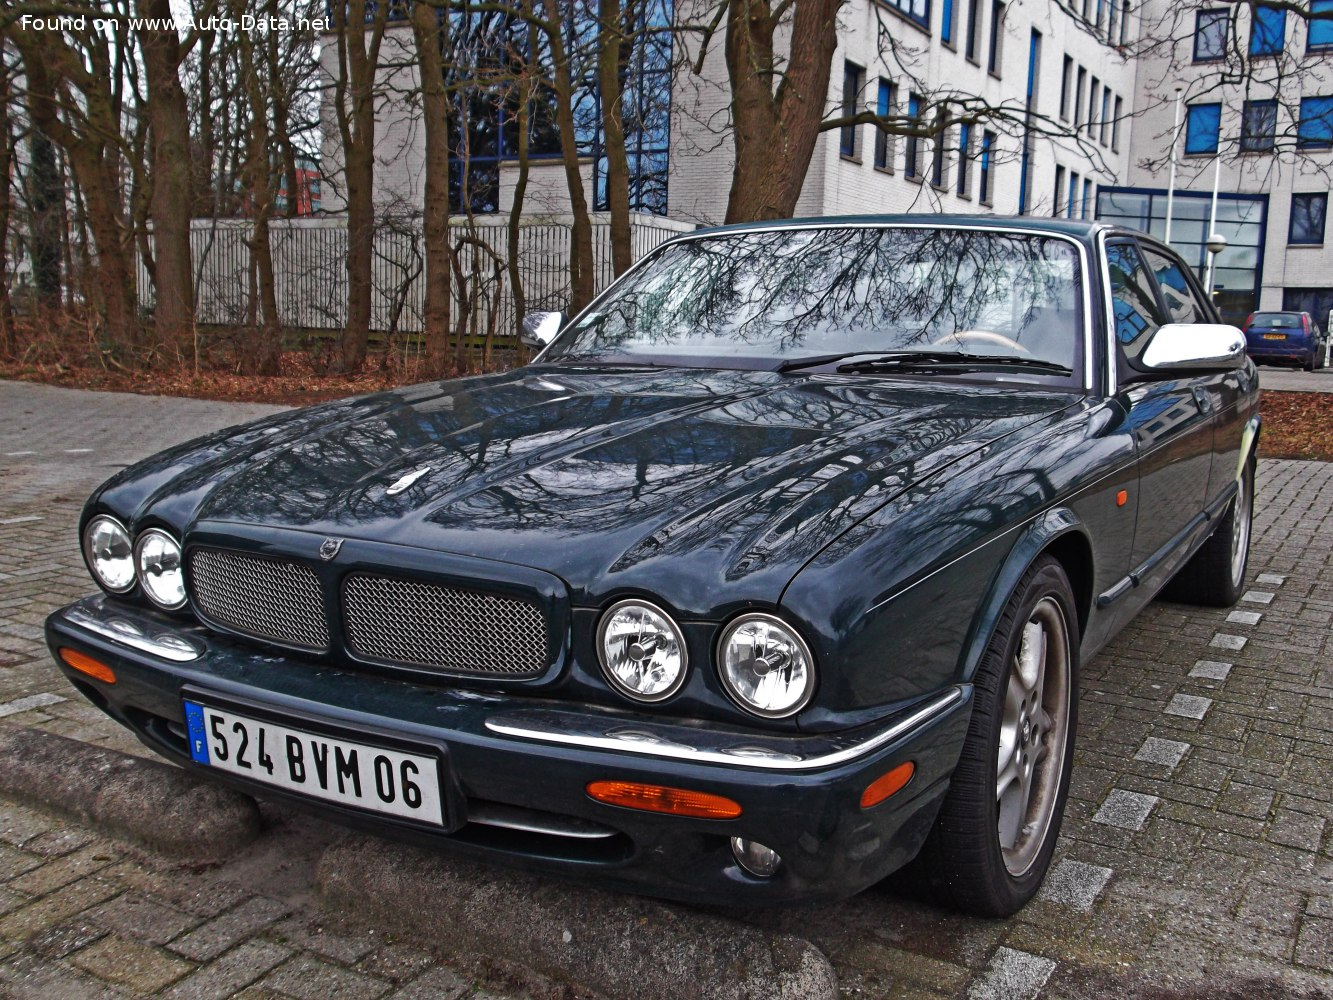 1997 Jaguar Xj X308 Xjr 4 0 V8 32v 363 Hp Automatic Technical Specs Data Fuel Consumption Dimensions